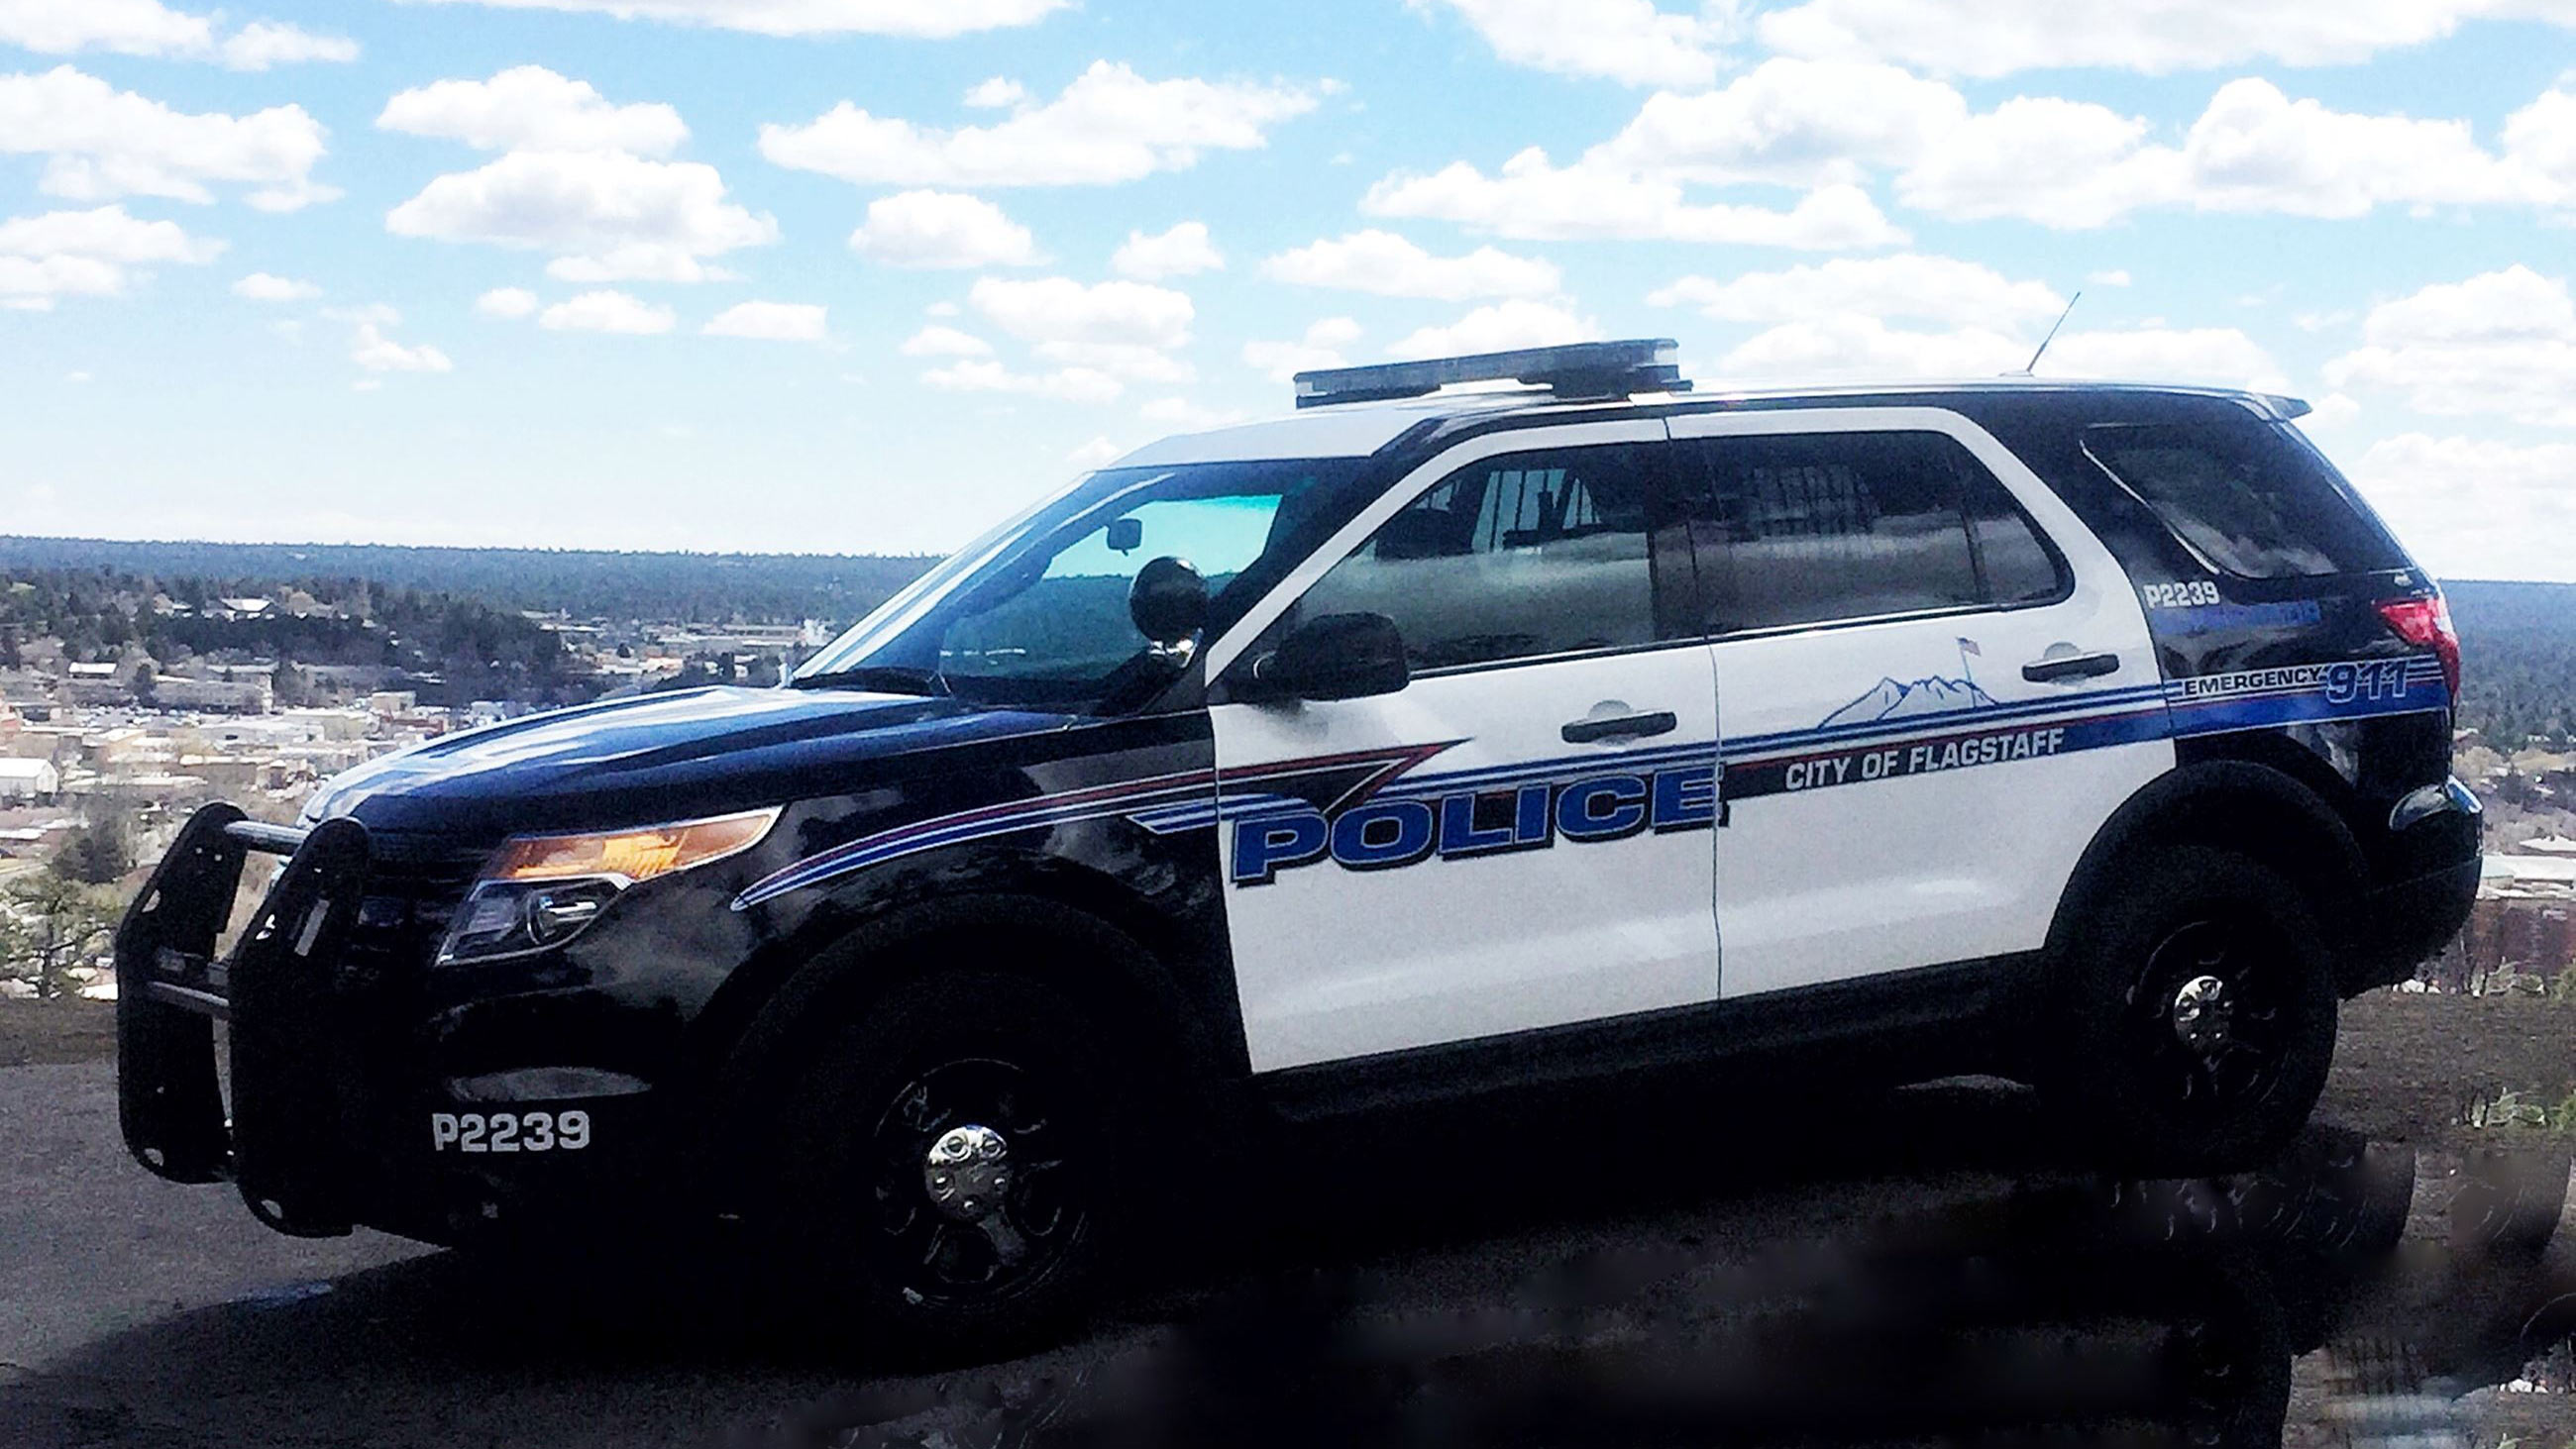 A Flagstaff Police vehicle.